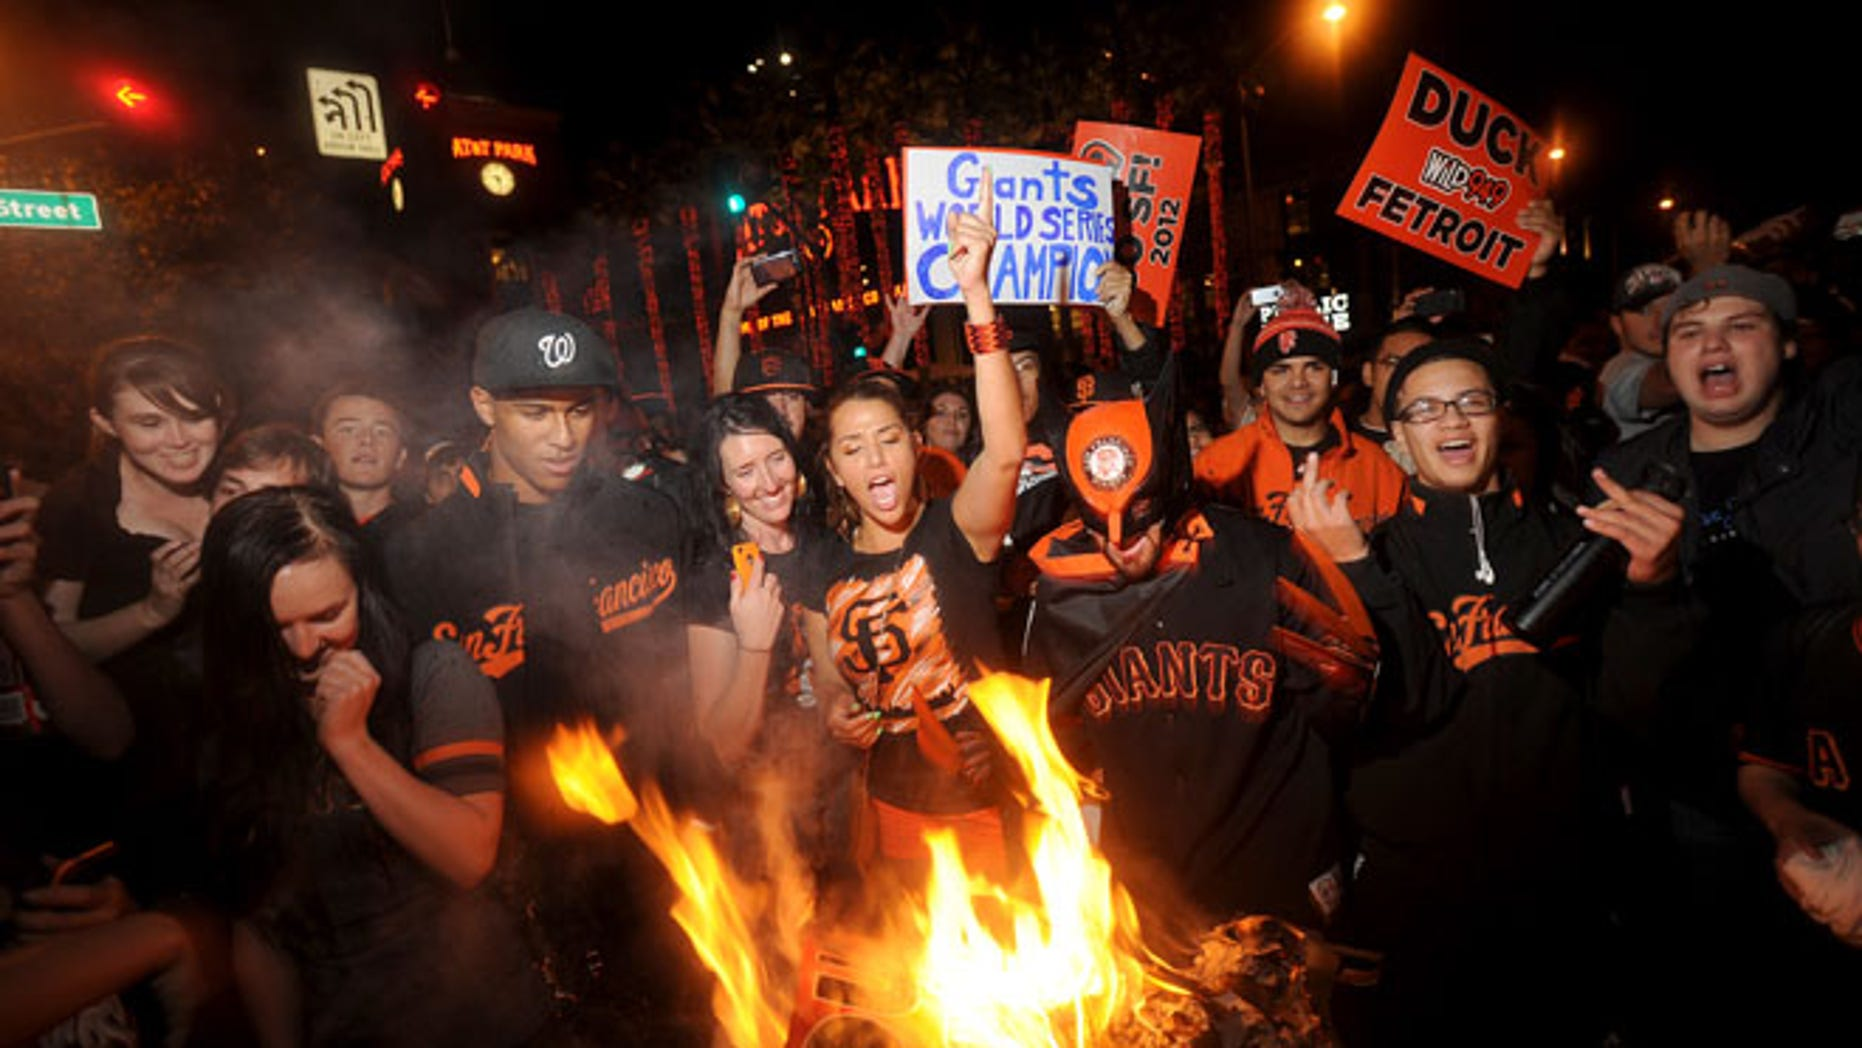 Oct. 28, 2012: San Francisco Giants fans celebrate outside PacBell Park in San Francisco after the Giants swept baseball's World Series against the Detroit Tigers.